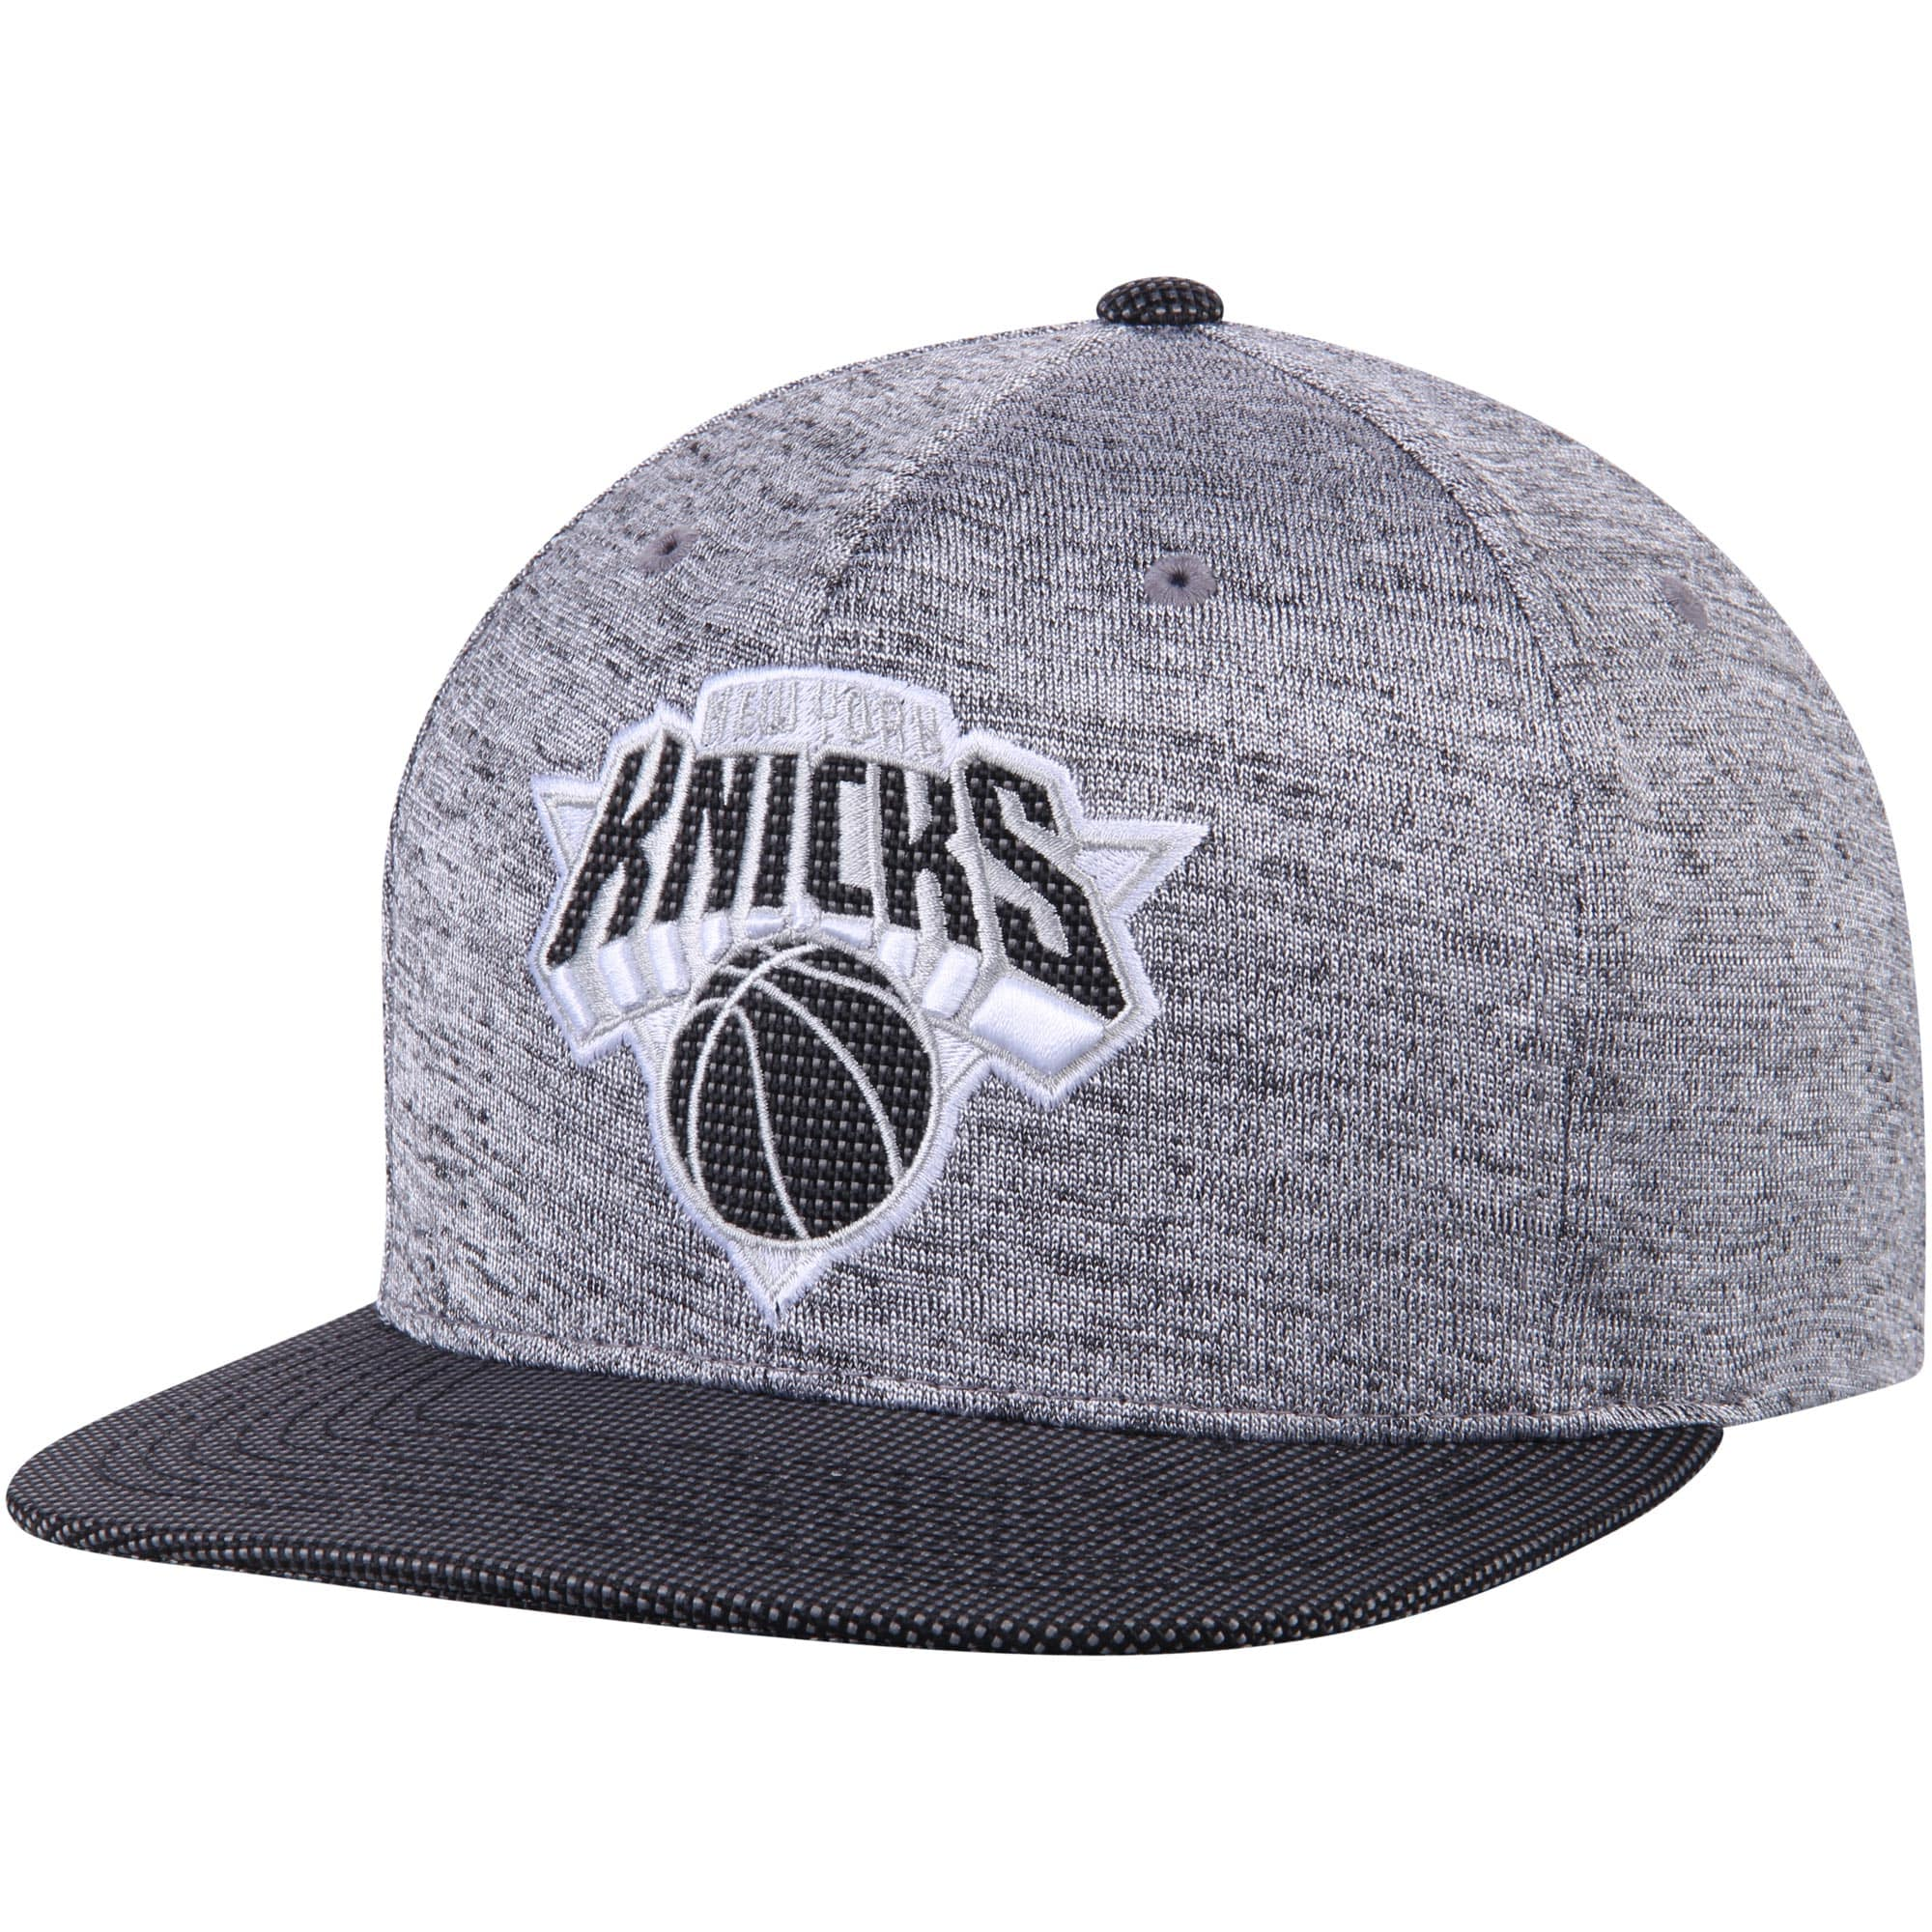 New York Knicks Mitchell & Ness Space Knit Snapback Adjustable Hat - Heathered Gray/Black